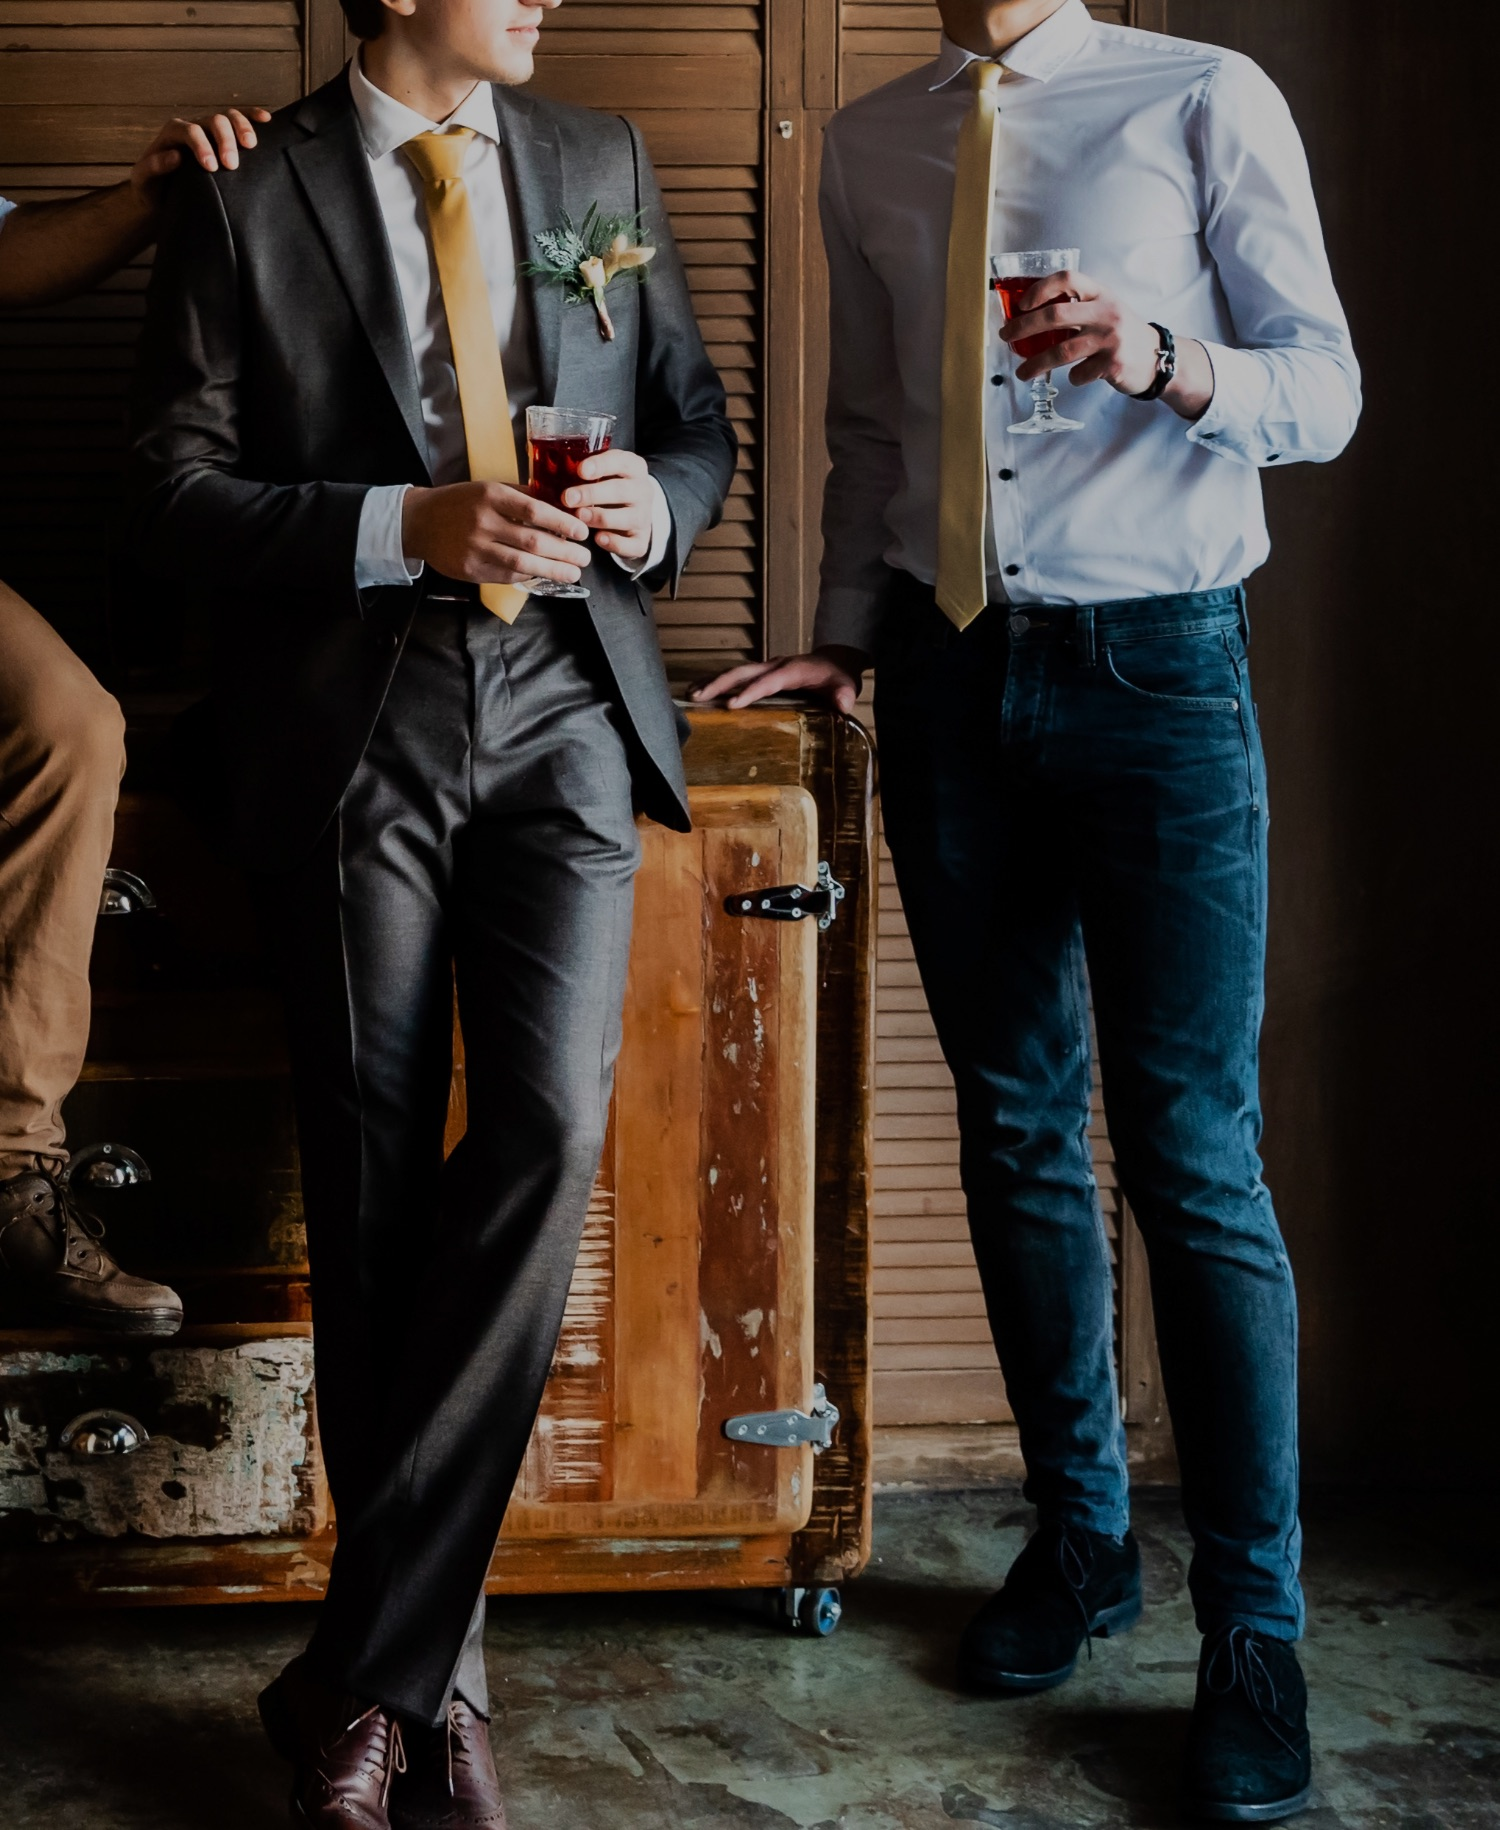 Wedding suits bespoke made in Exeter